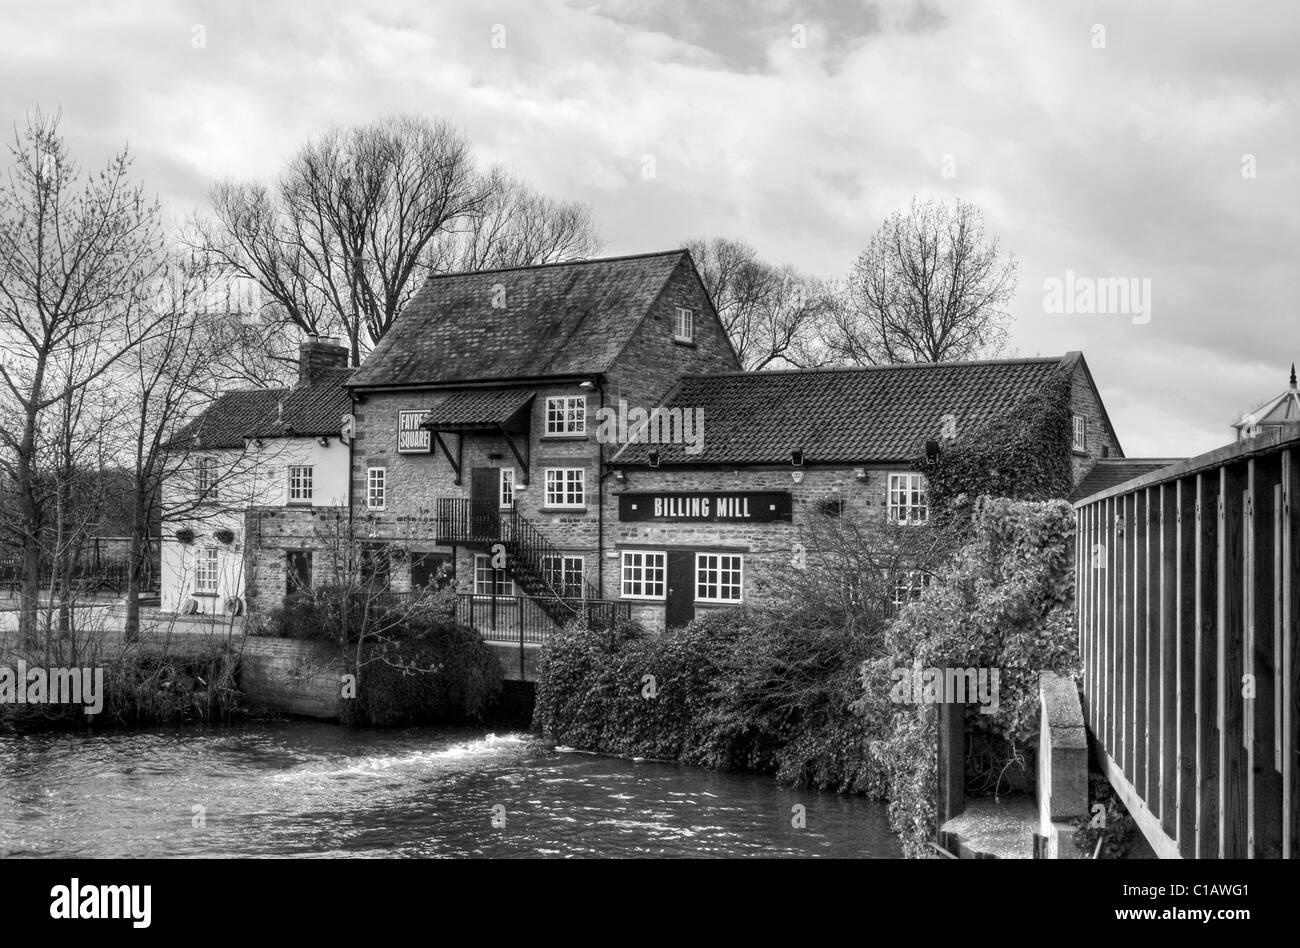 Billing Mill in the grounds of Billing Aquadrome, near Northampton - Stock Image